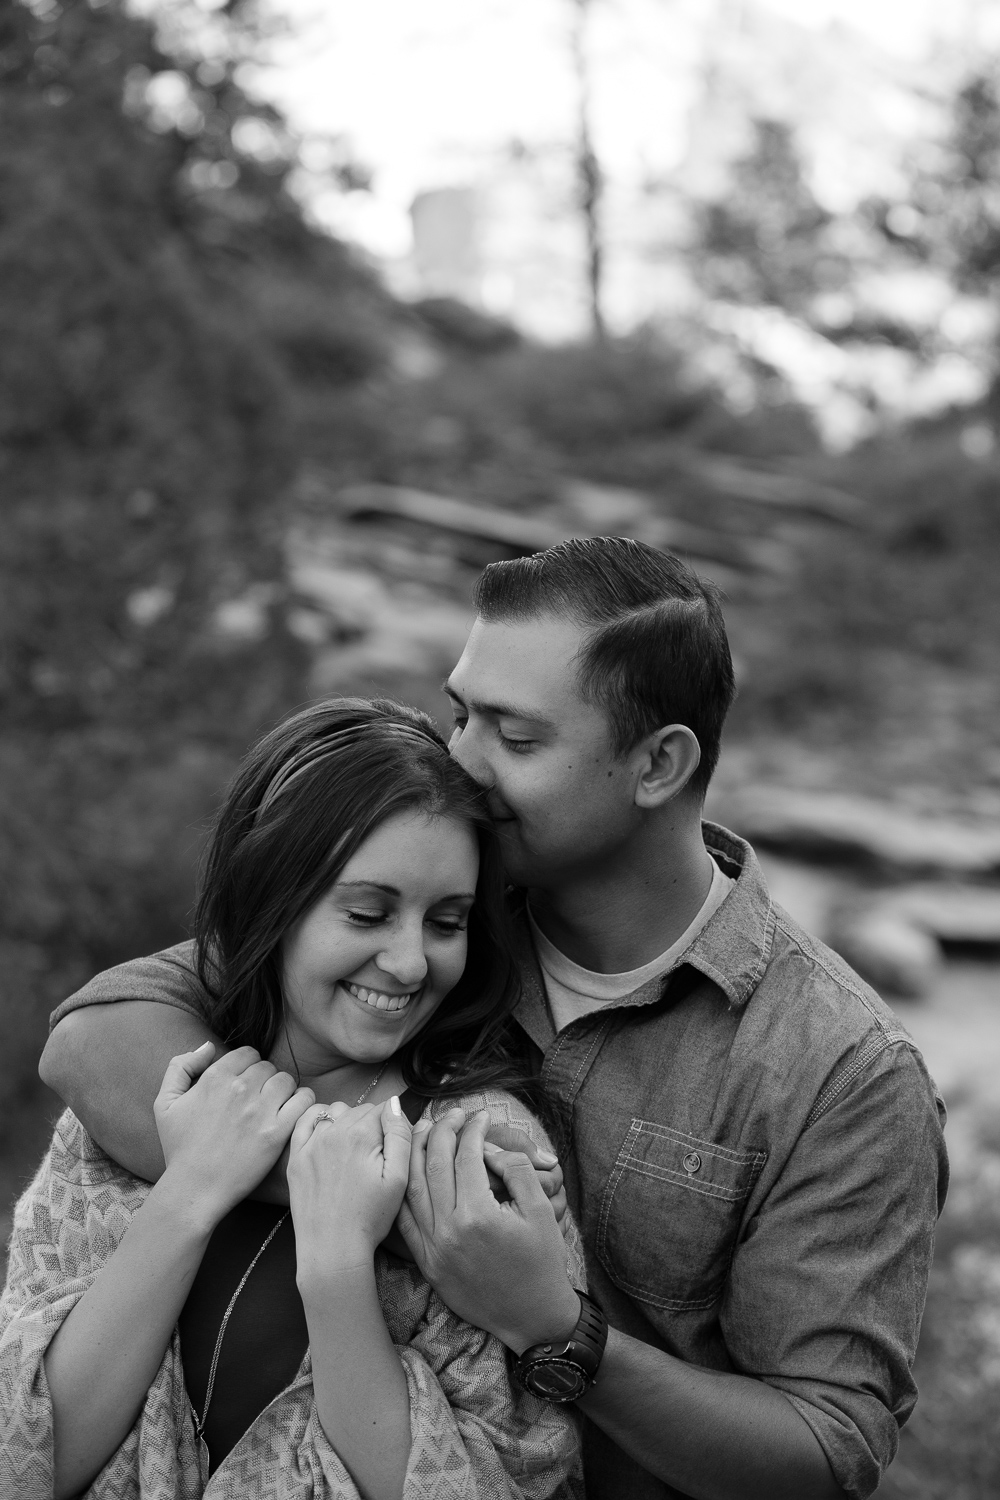 Black and white fine art zion national park adventure engagement photographers